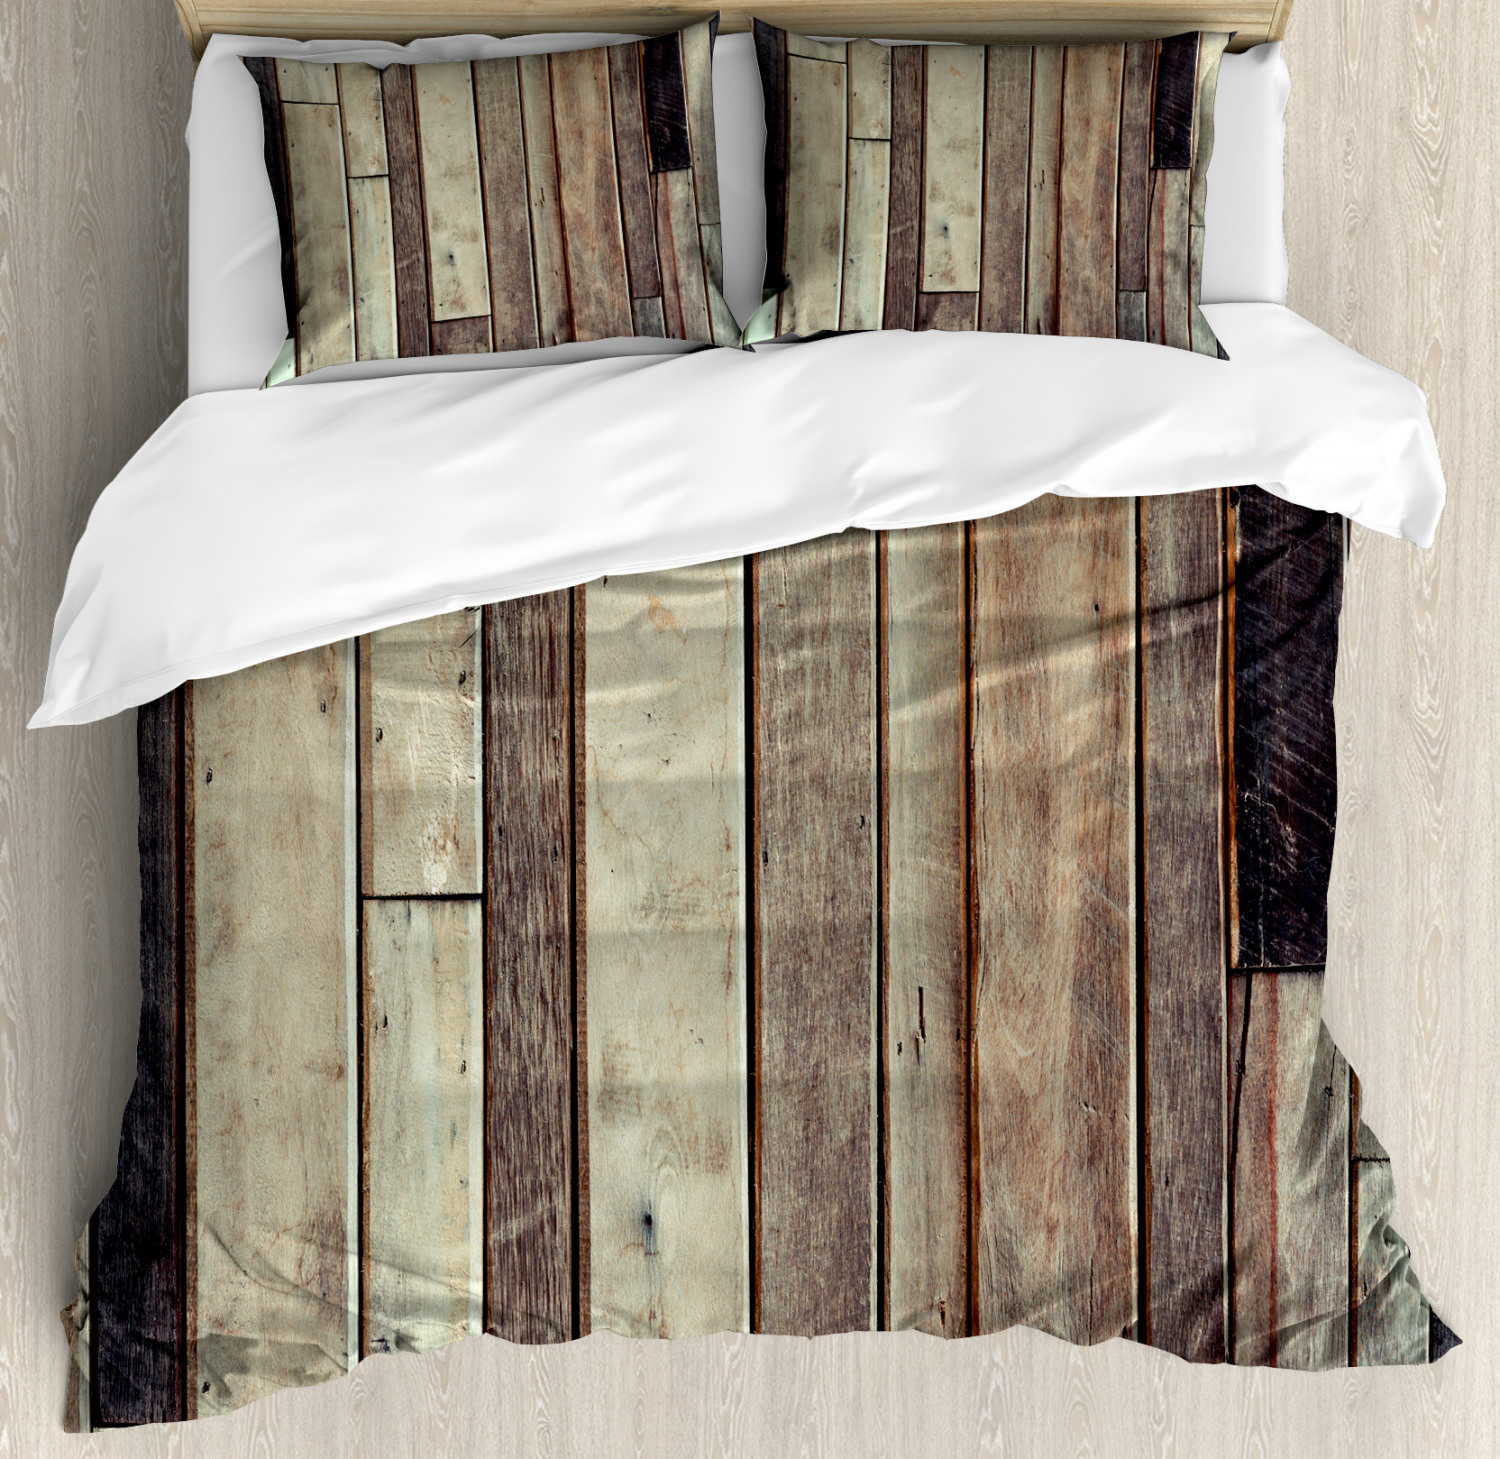 Wooden Duvet Cover Set with Pillow Shams American Western Style Print